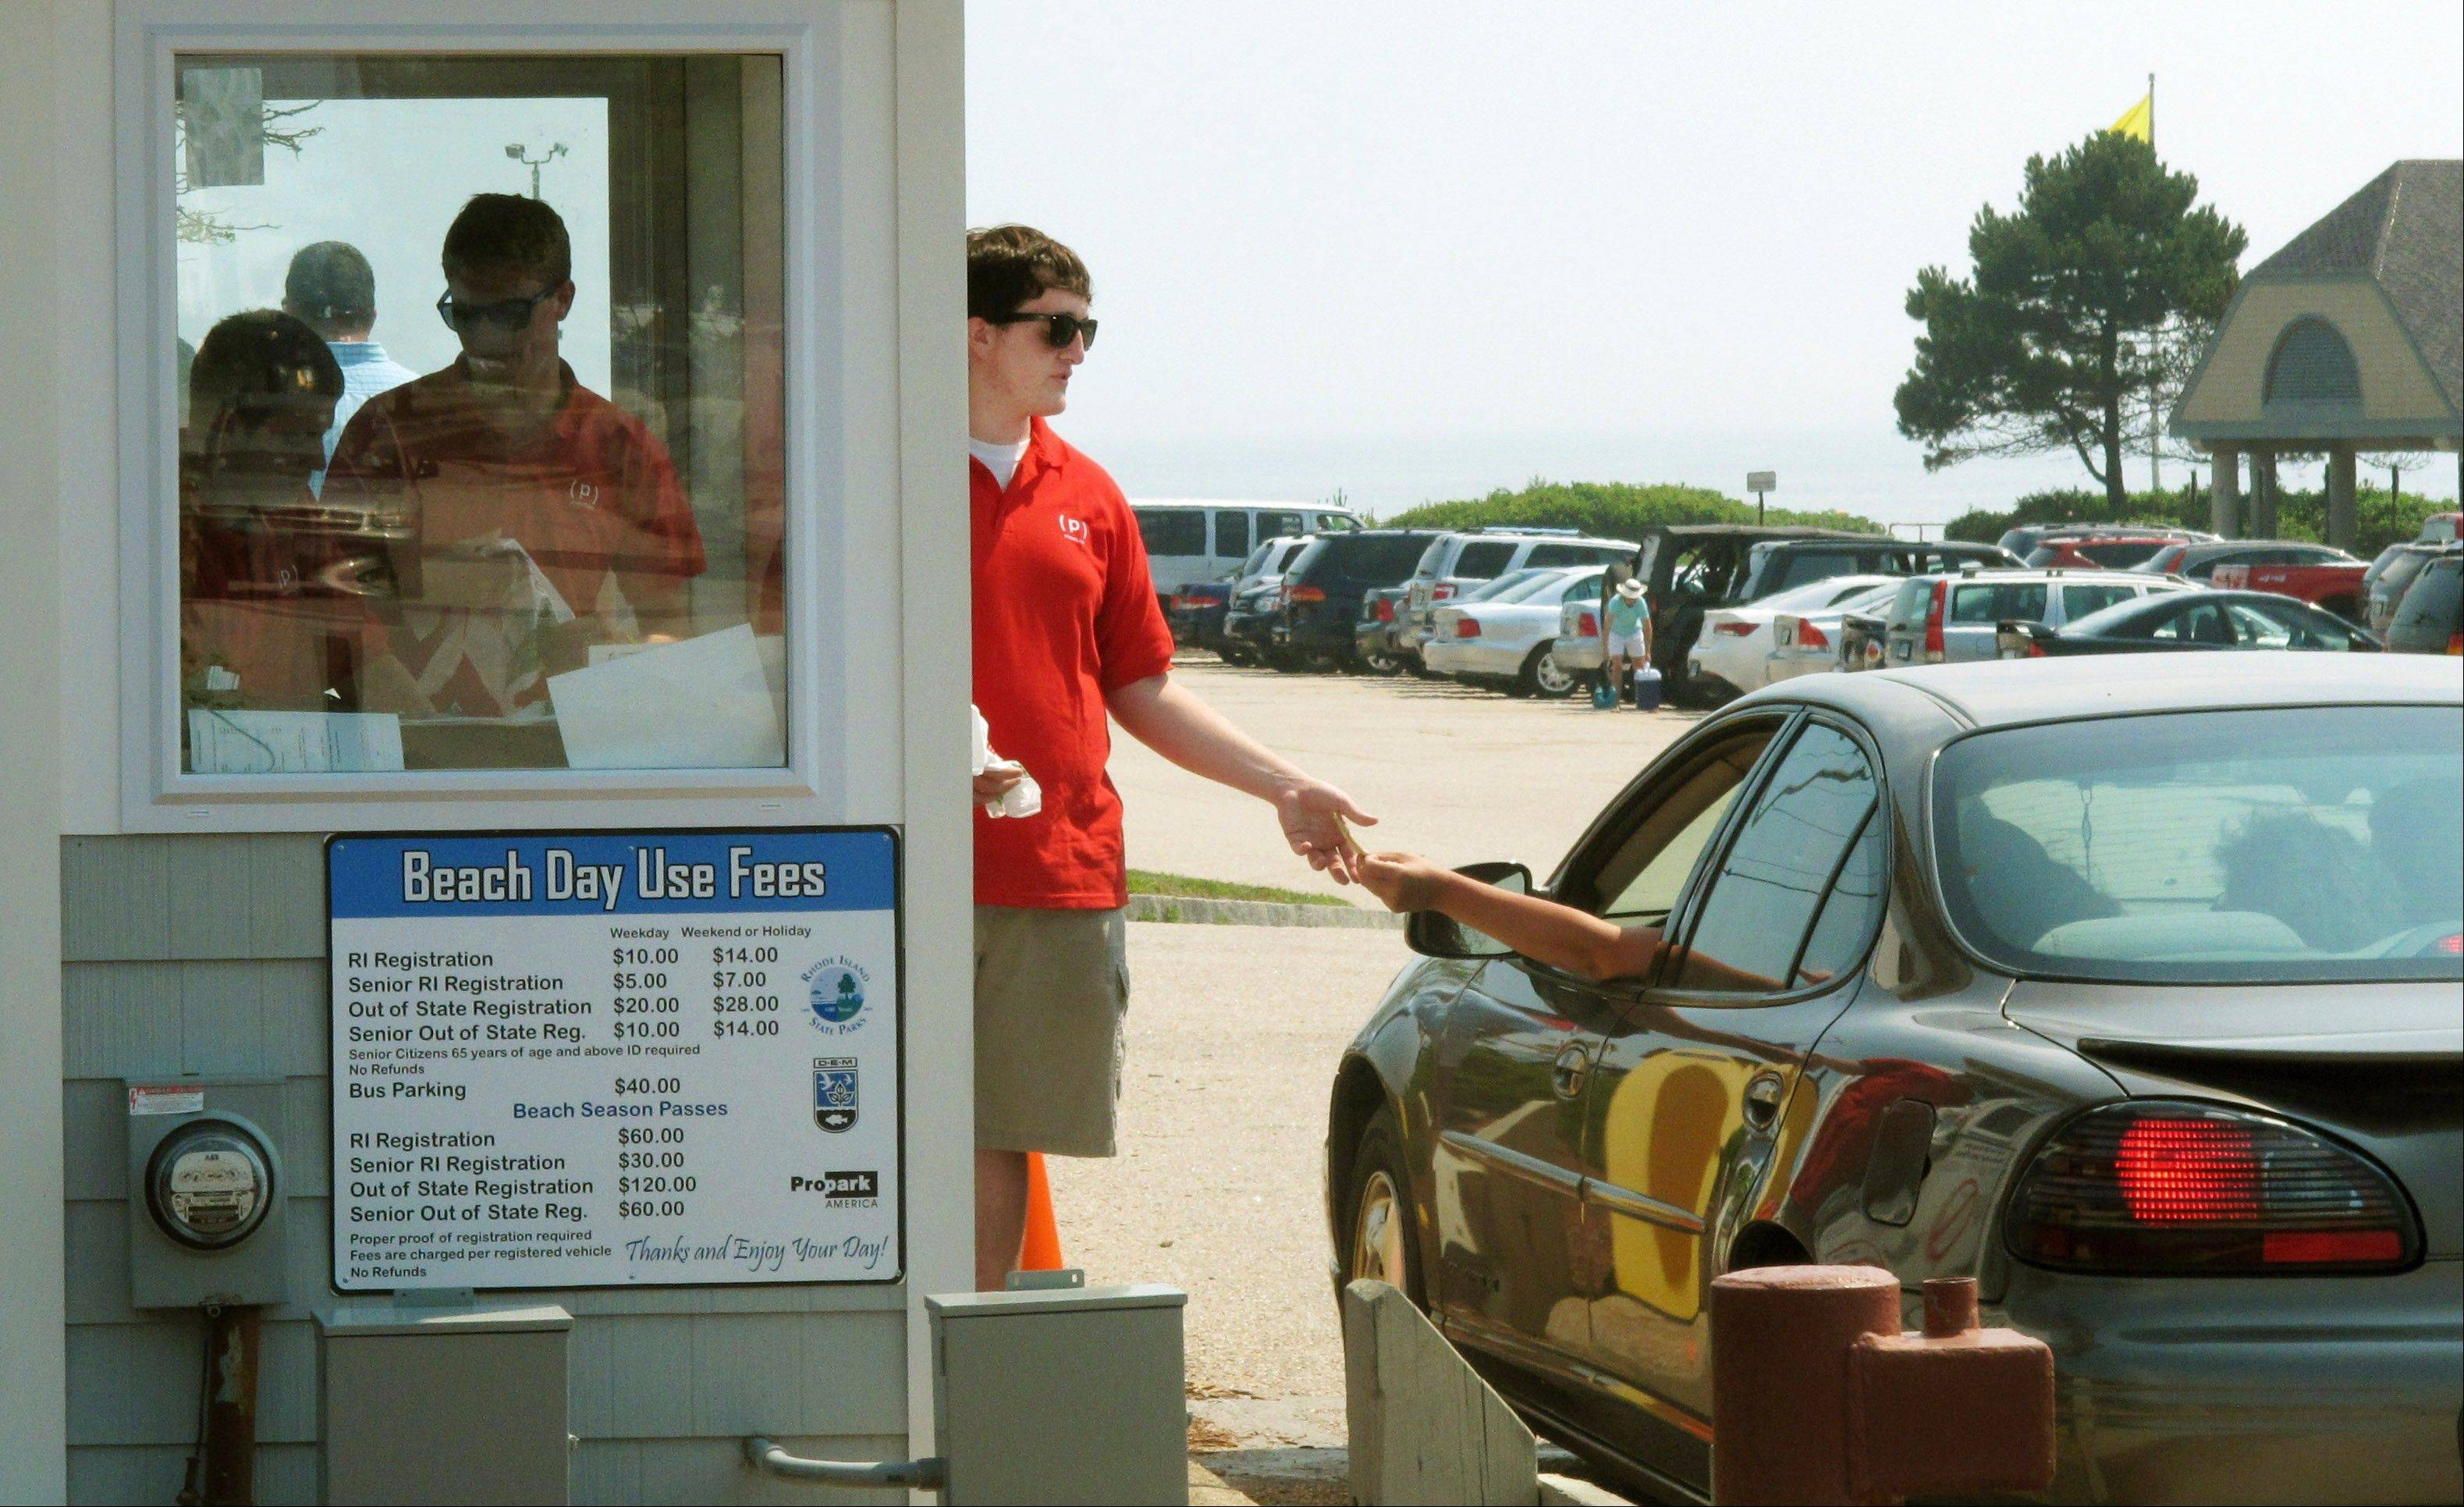 An attendant at Scarborough State Beach collects an entrance fee from a beach-goer in Narragansett, R.I. The state of Rhode Island has nearly doubled the fees to park at some of its state beaches this year.